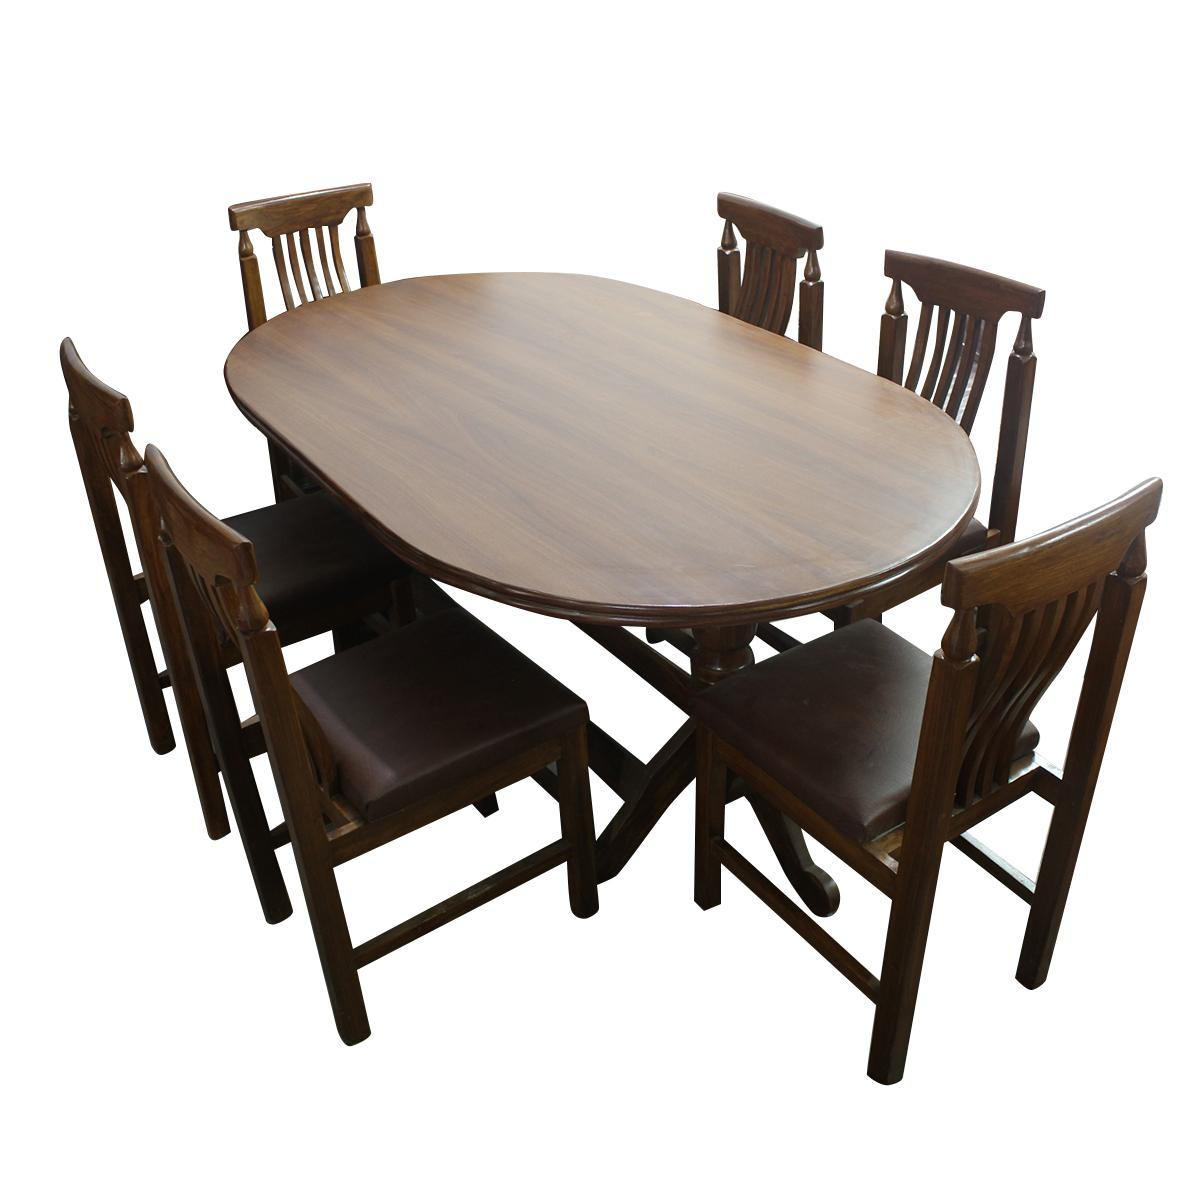 Latest Kaya 3 Piece Dining Sets Intended For Home Kitchen & Dining Furniture In Nepal At Best Prices – Daraz (View 9 of 20)